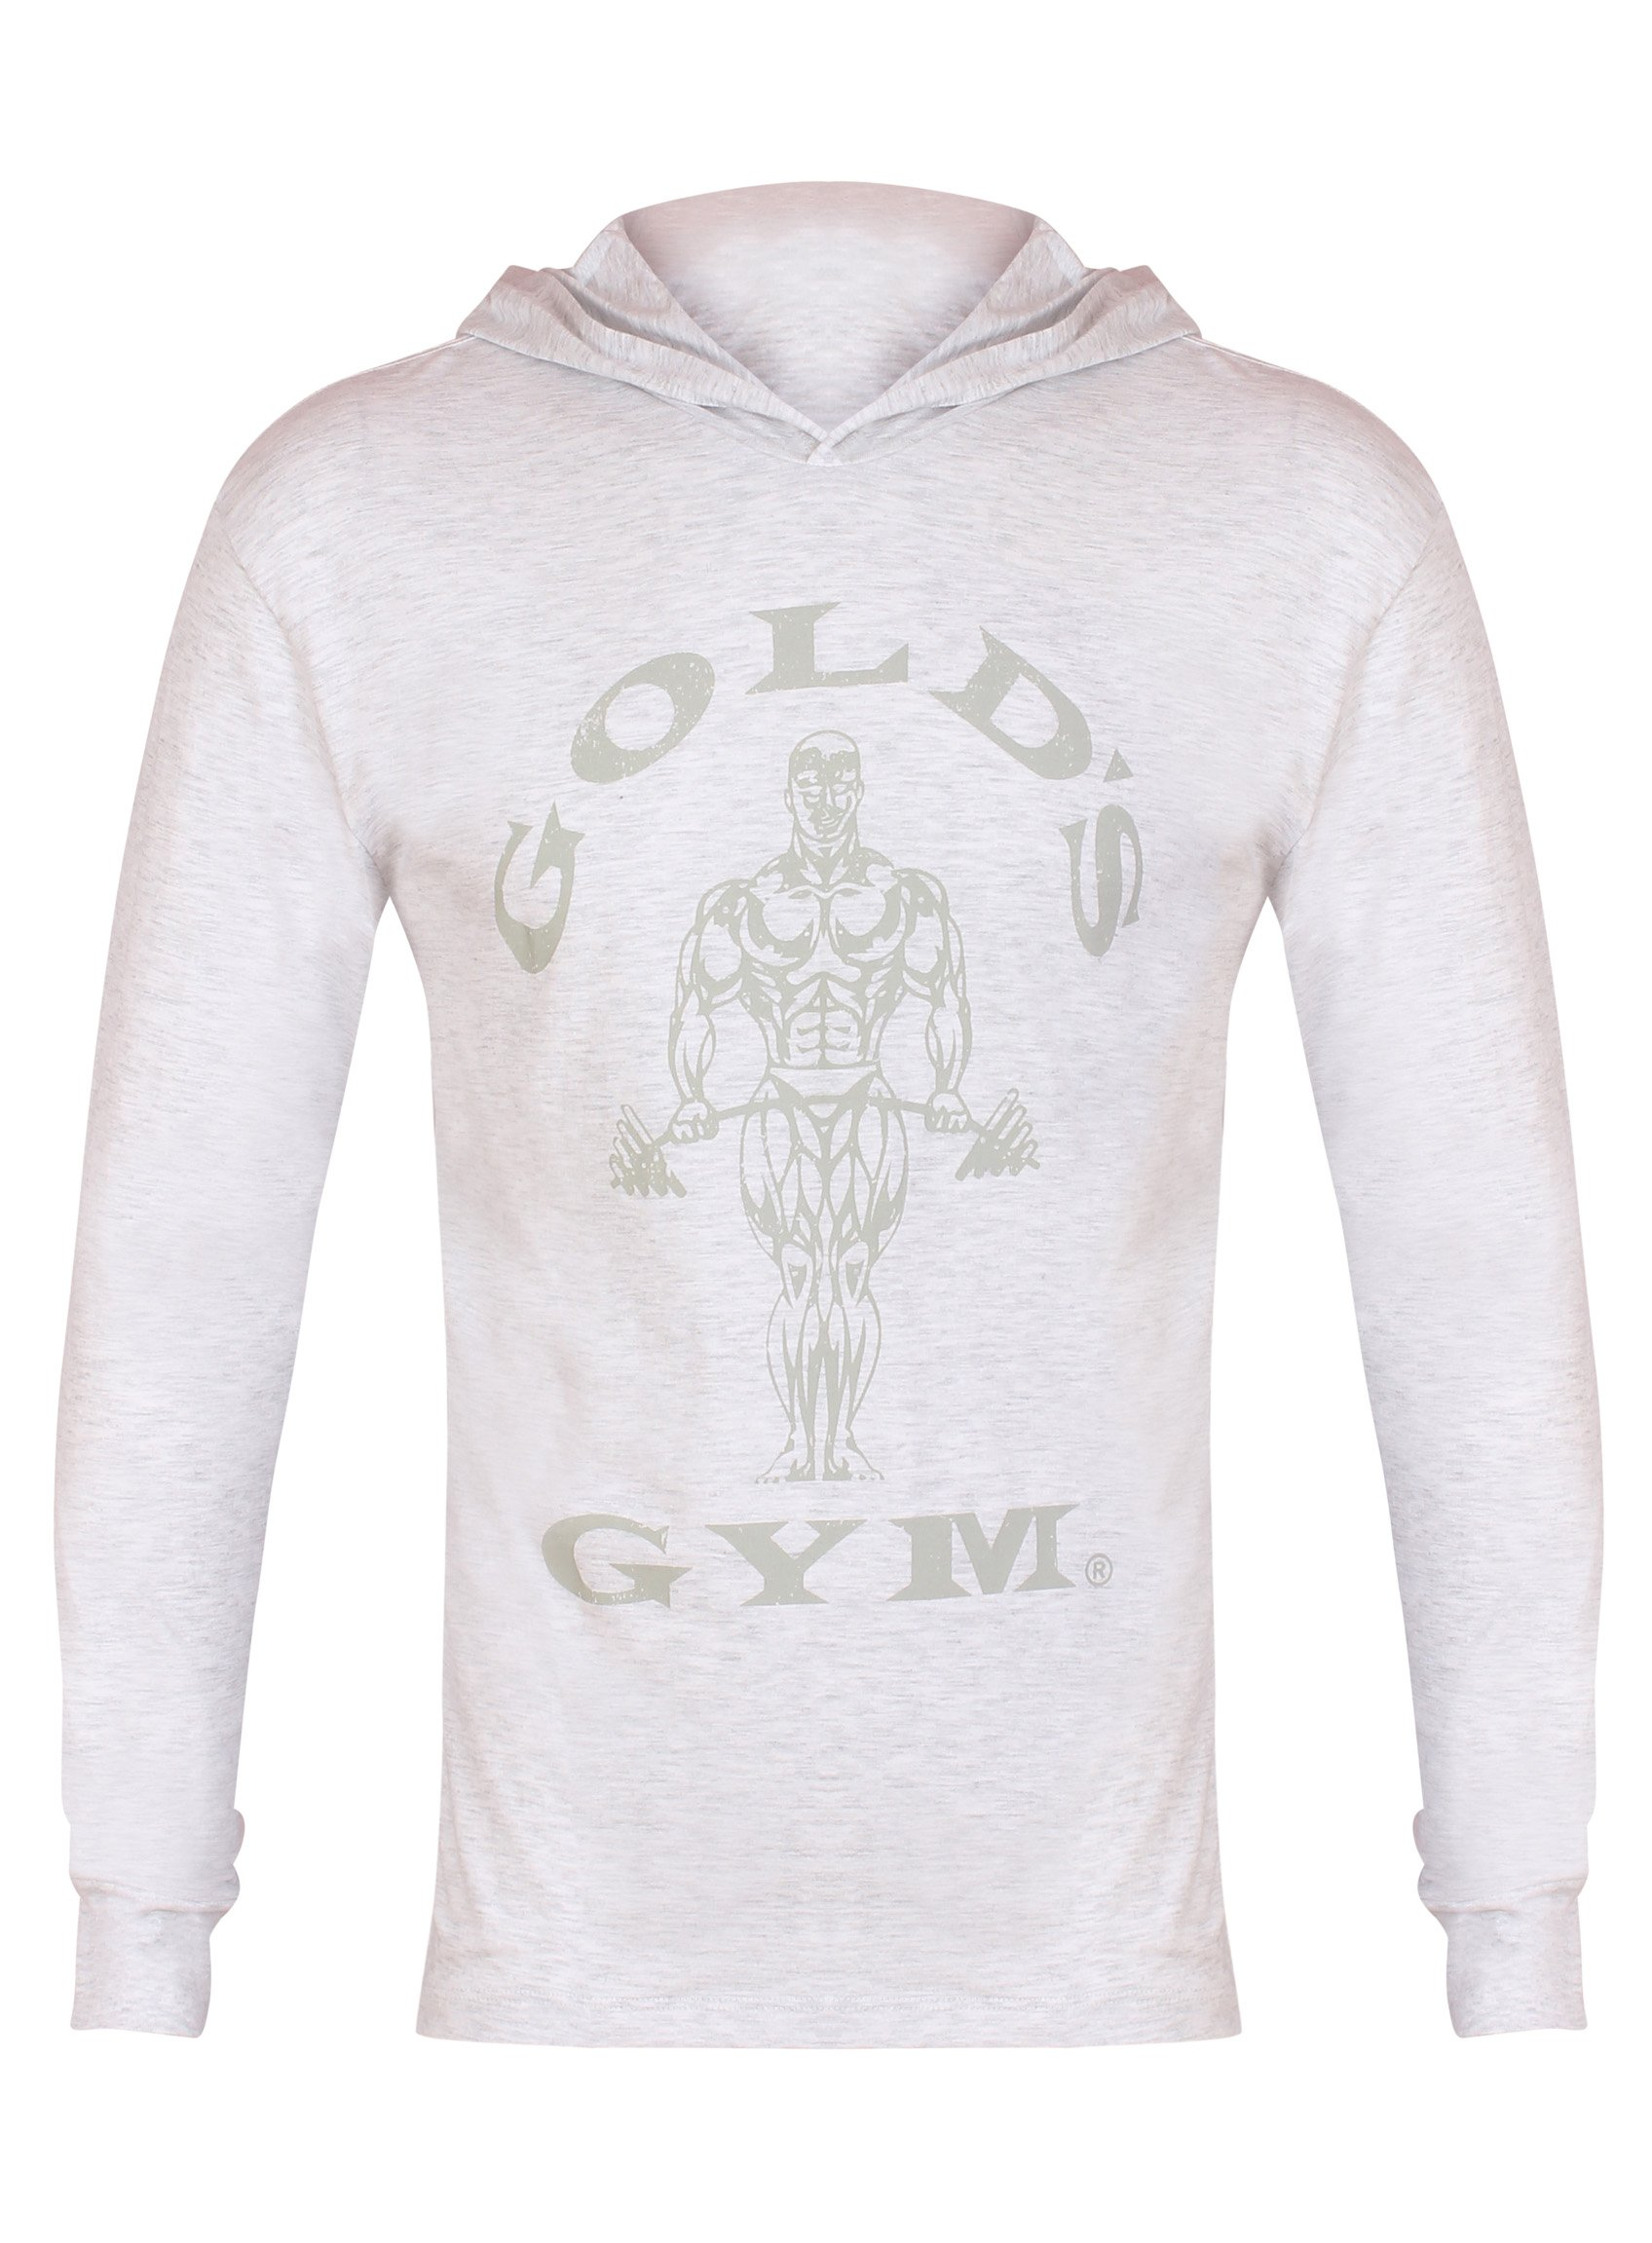 Golds Gym 2017 Long Sleeve Hooded Top Mens Training Sports Hoodie White Marl Small by Golds Gym